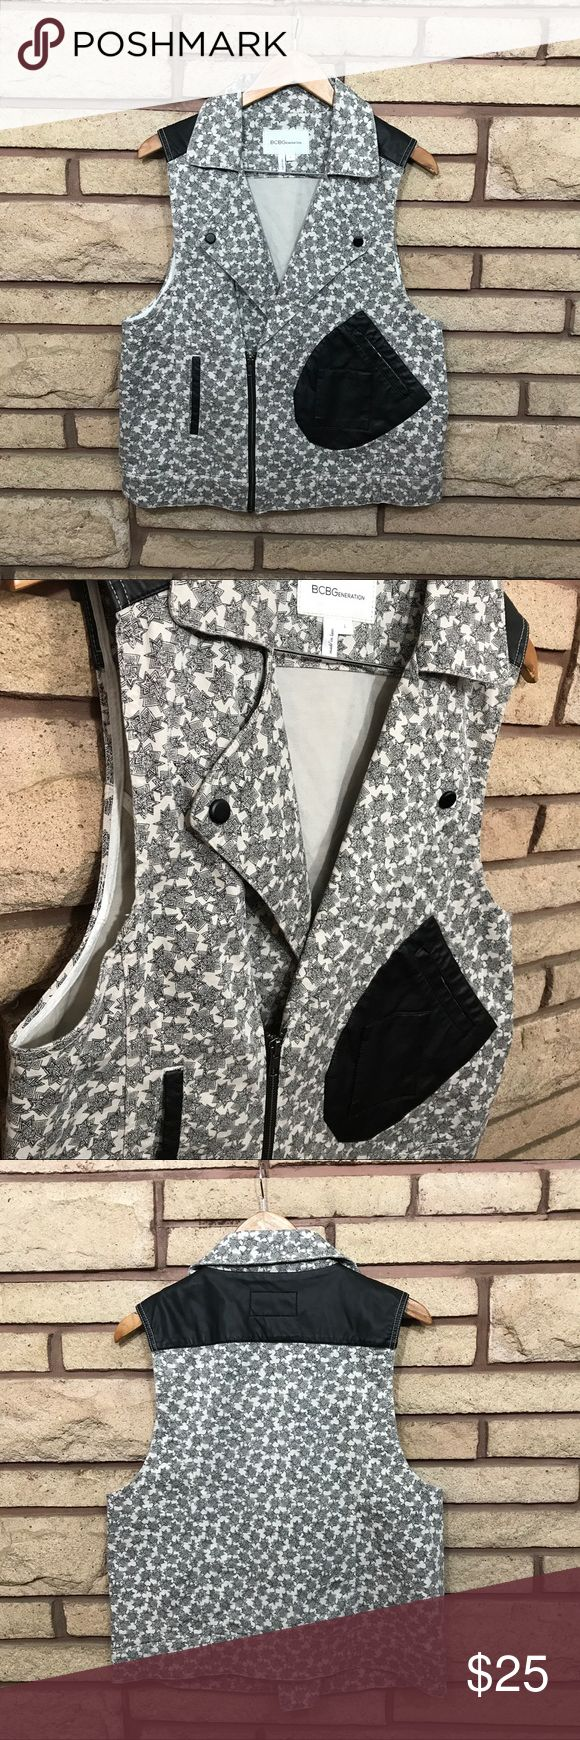 Fun Patterned Vest 🌑Star patterned BCBGeneration vest   🌘Showing no signs of wear    🌗Material: 97% cotton 3% spandex 🌖Dimensions: 20in bust, 25in top of collar to bottom  🌕Offers Welcome 🌔Fast shipping 🌓Sorry, no trades 🌒Bundle and save 30% off two or more items 🌑Free gift with every purchase BCBGeneration Jackets & Coats Vests